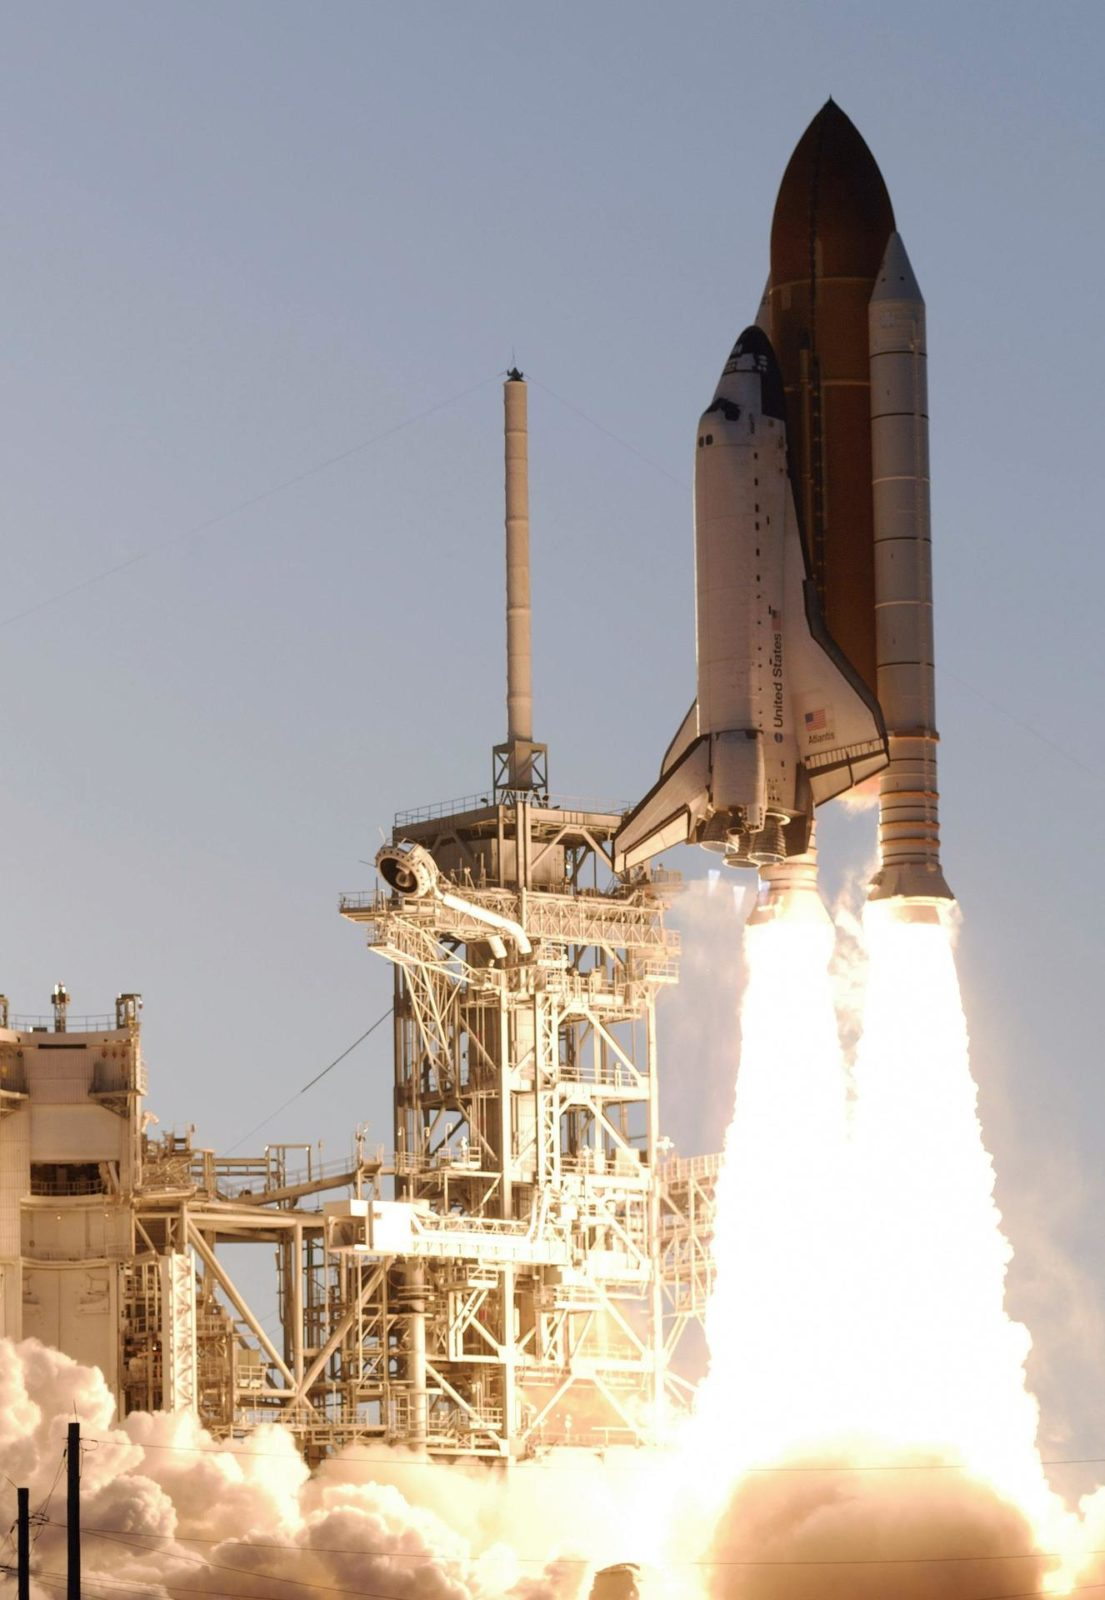 """STS117-S-025 (8 June 2007) --- The Space Shuttle Atlantis and its seven-member STS-117 crew head toward Earth-orbit and a scheduled link-up with the International Space Station. Liftoff from Kennedy Space Center's launch pad 39A occurred at 7:38 p.m. (EDT) on June 8, 2007. Onboard are astronauts Rick Sturckow, commander; Lee Archambault, pilot; Jim Reilly, Patrick Forrester, John """"Danny"""" Olivas, Steven Swanson and Clayton Anderson, all mission specialists. Anderson will join Expedition 15 in progress to serve as a flight engineer aboard the station. Atlantis will dock with the orbital outpost on Sunday, June 10, to begin a joint mission that will increase the complex's power generation capability. Using the shuttle and station robotic arms and conducting three scheduled spacewalks, the astronauts will install another set of giant solar array wings on the station and retract another array, preparing it for a future move. STS117-S-025"""